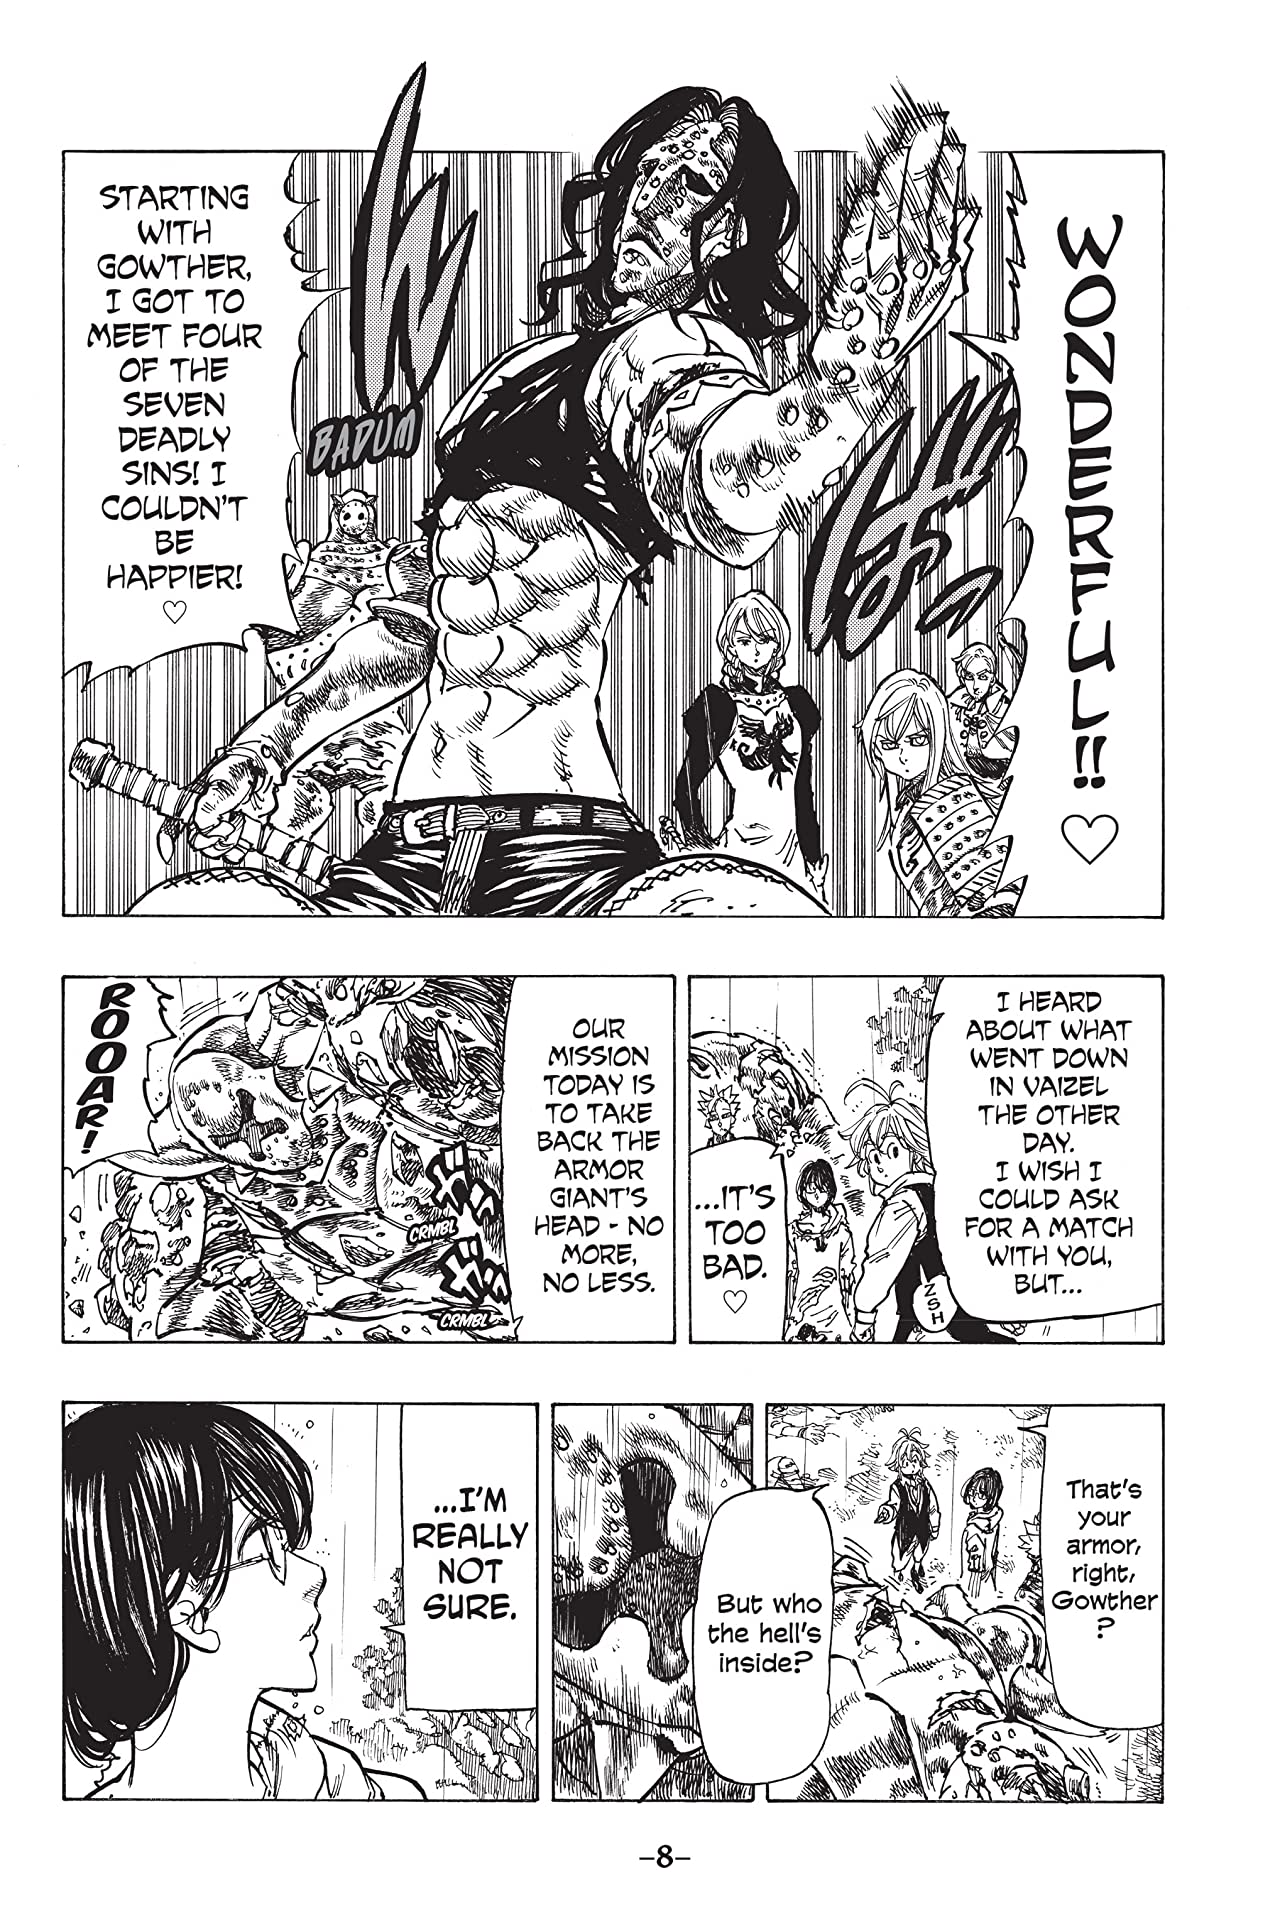 The Seven Deadly Sins #55